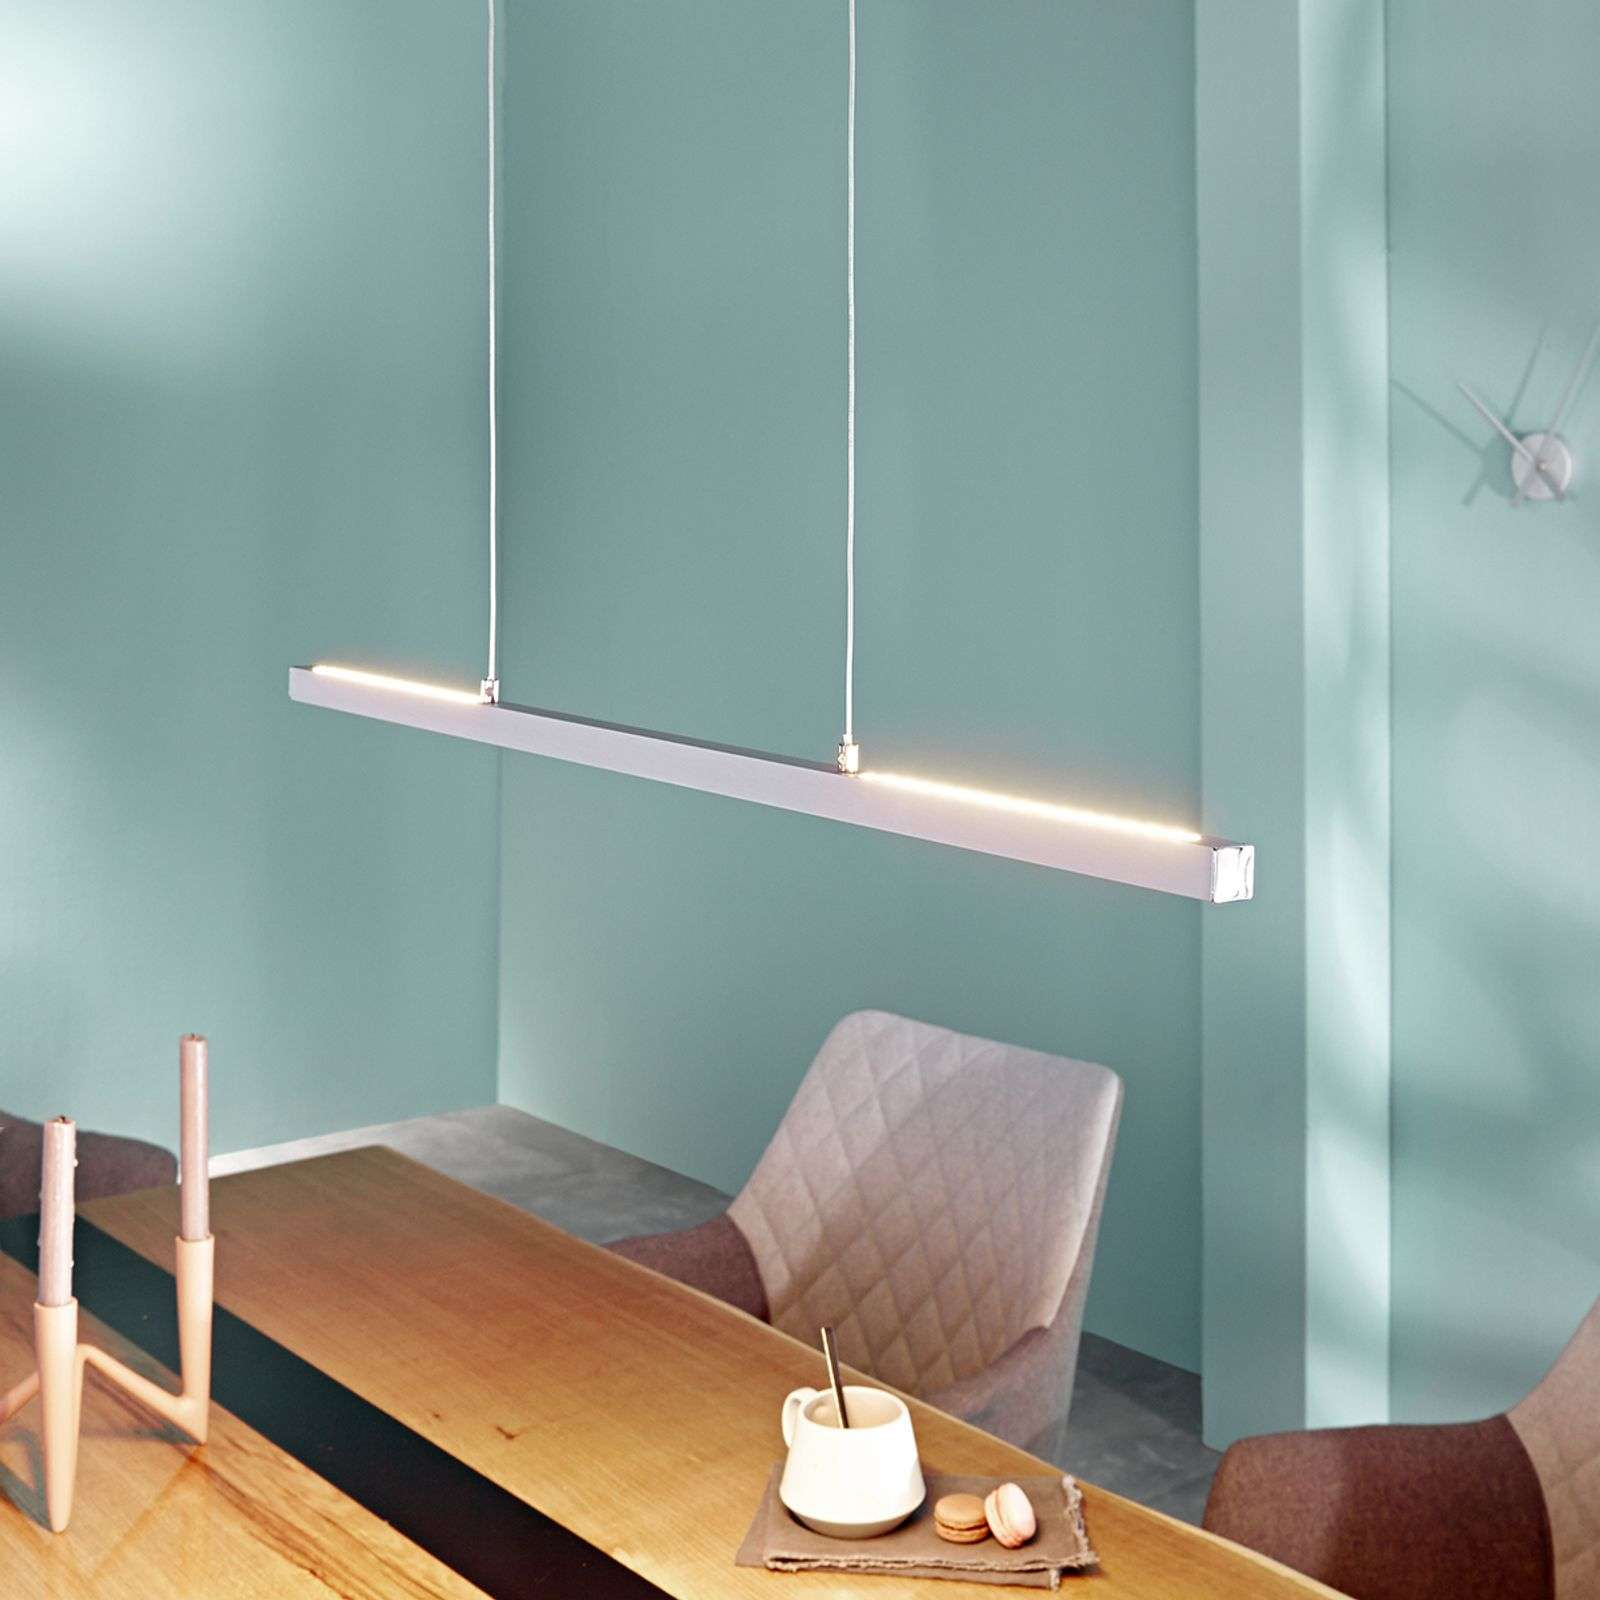 Suspension LED Rico, dimmable, alu mat, 78 cm